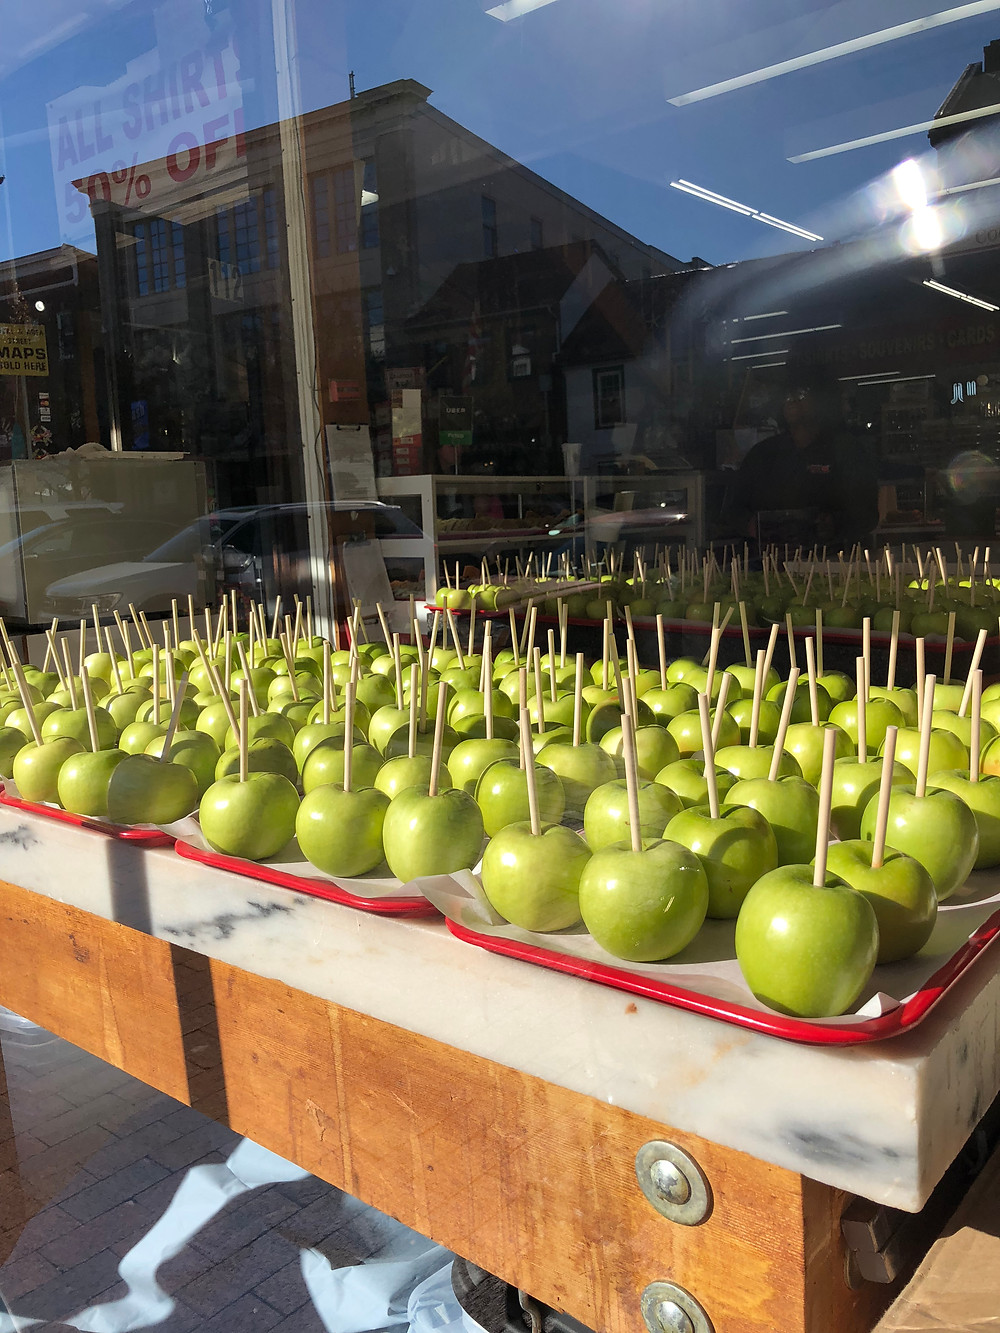 Green apples in window store front